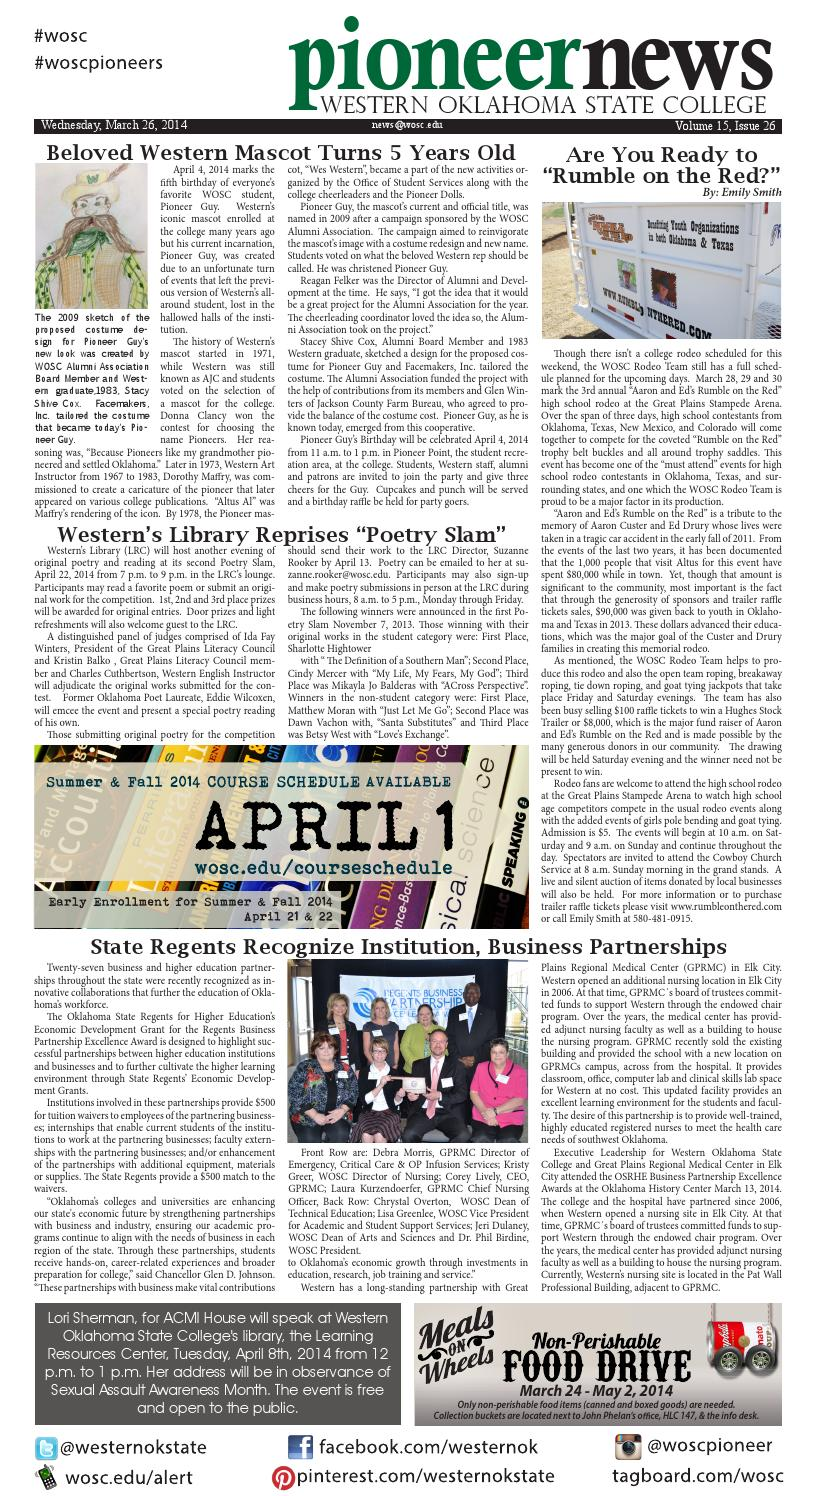 Pioneer News Vol 15 Issue 26 Mar 26 2014 By Western Ok State